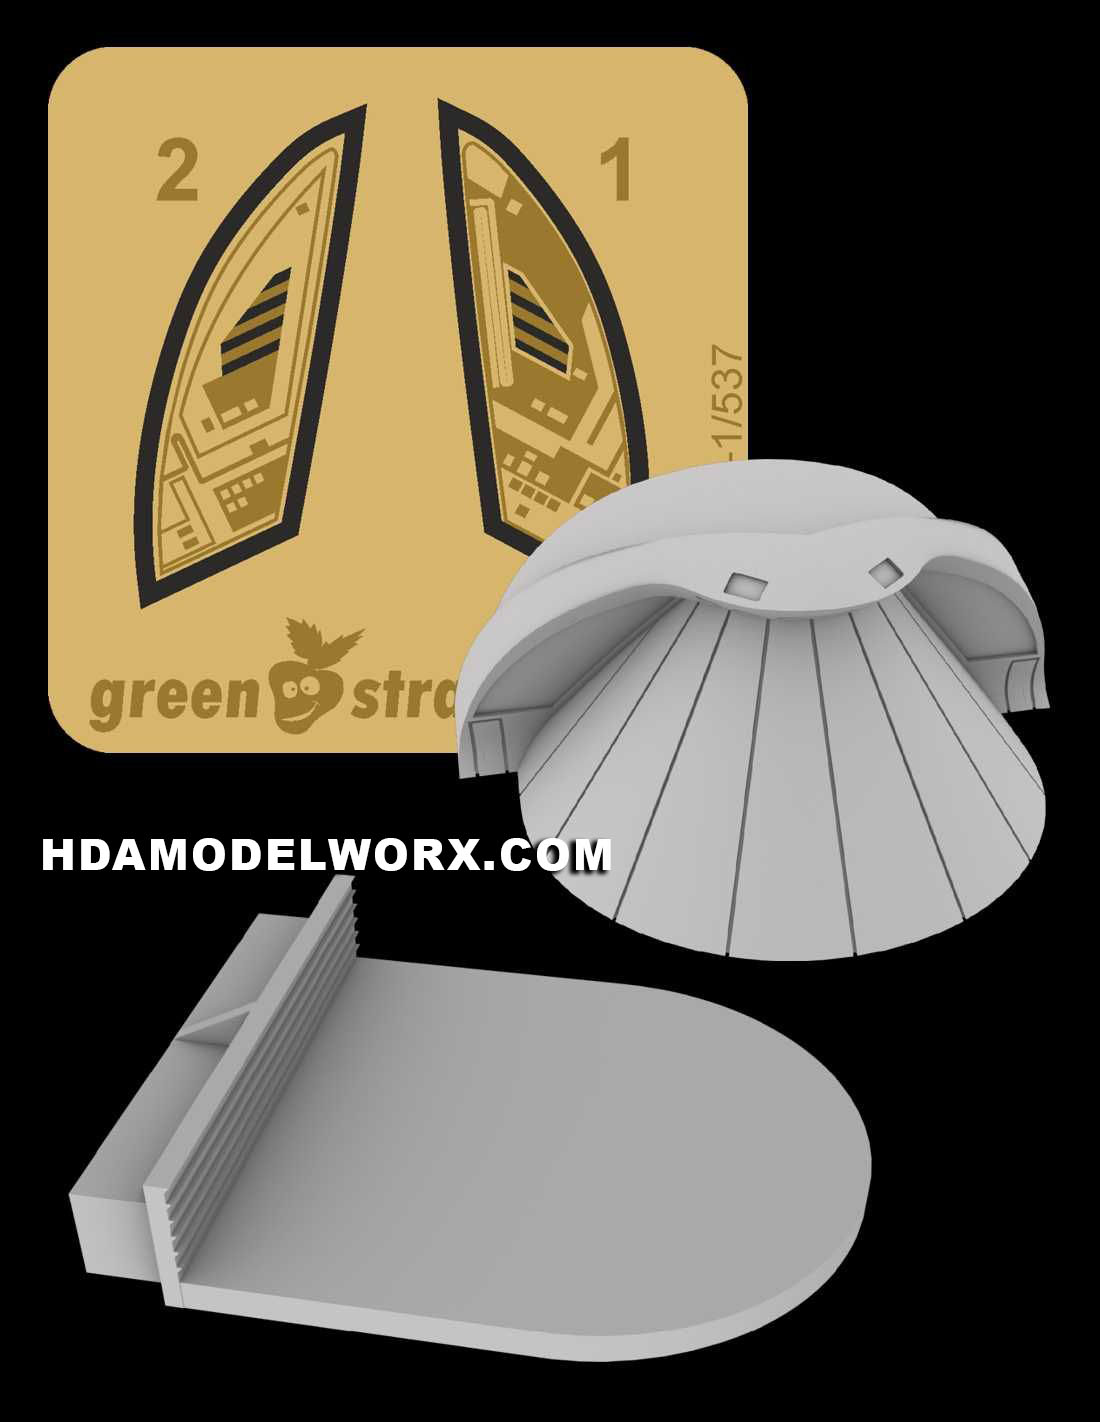 Constitution class (refit) - Hangar Entrance / Shuttle Bay Door Resin and Photo Etch Detail Set for the 1/537 Scale AMT Model Kit by Green Strawberry  COMING SOON